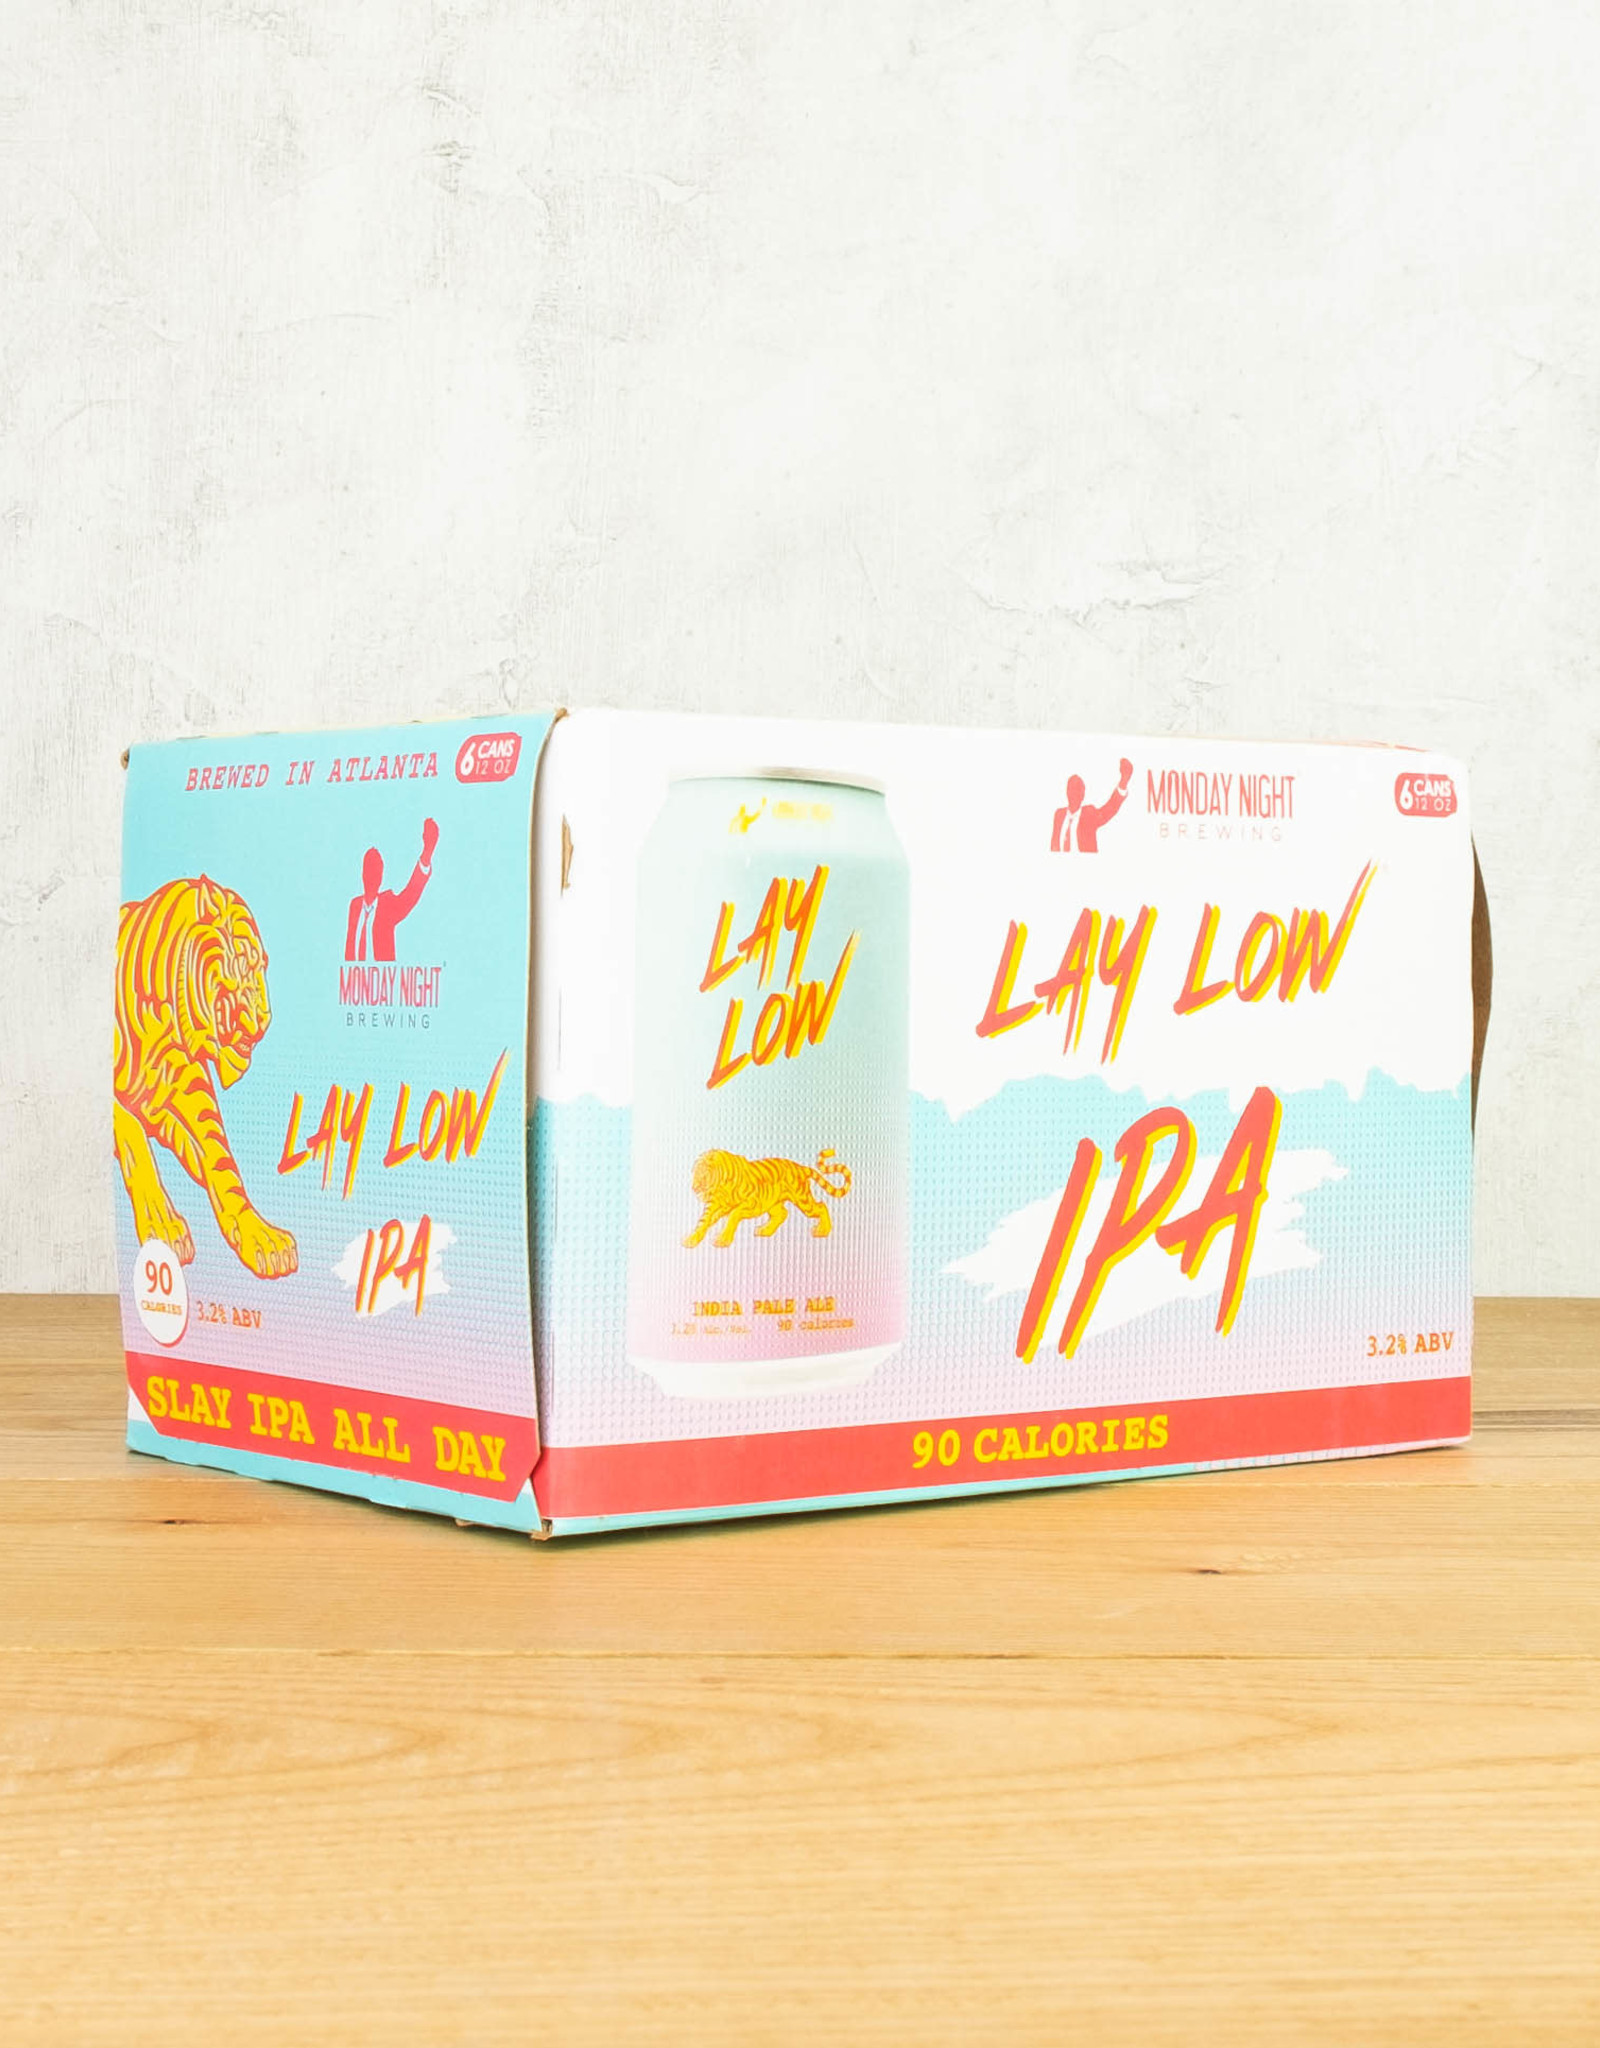 Monday Night Lay Low IPA 6pk